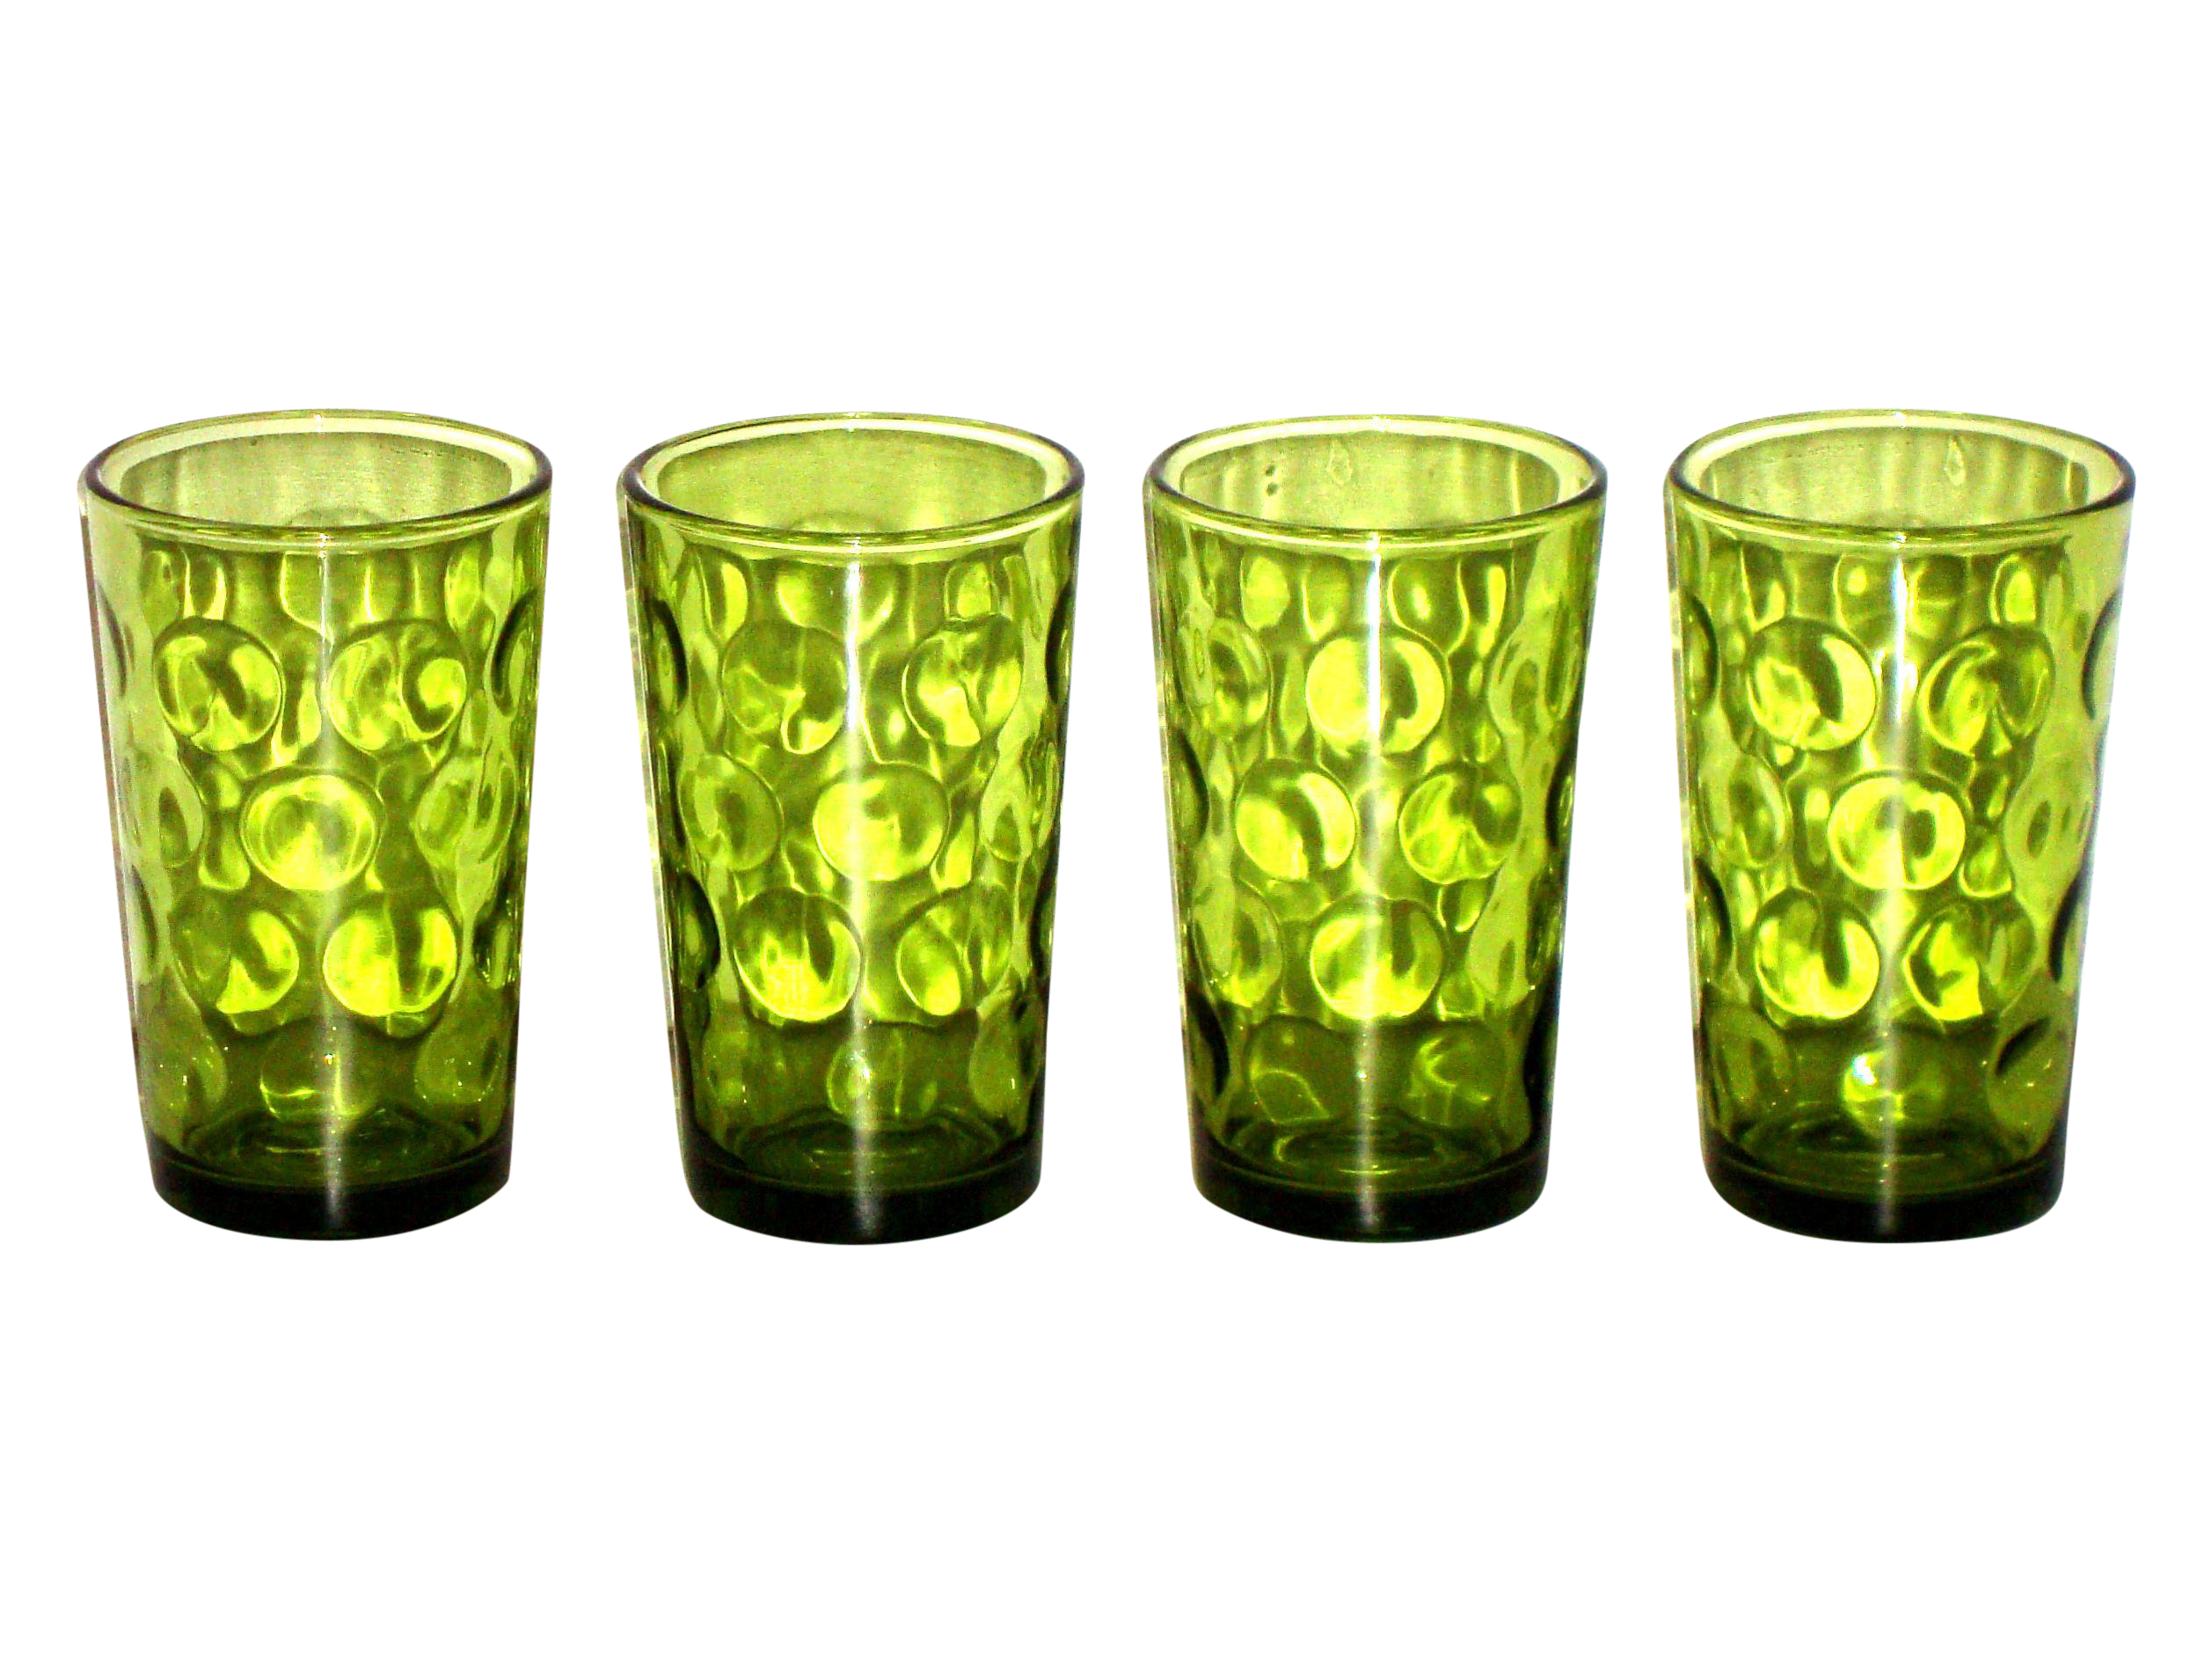 decor eating barware four htm barcraft fit decorative shot categories image tall drinking set iridescent of glasses